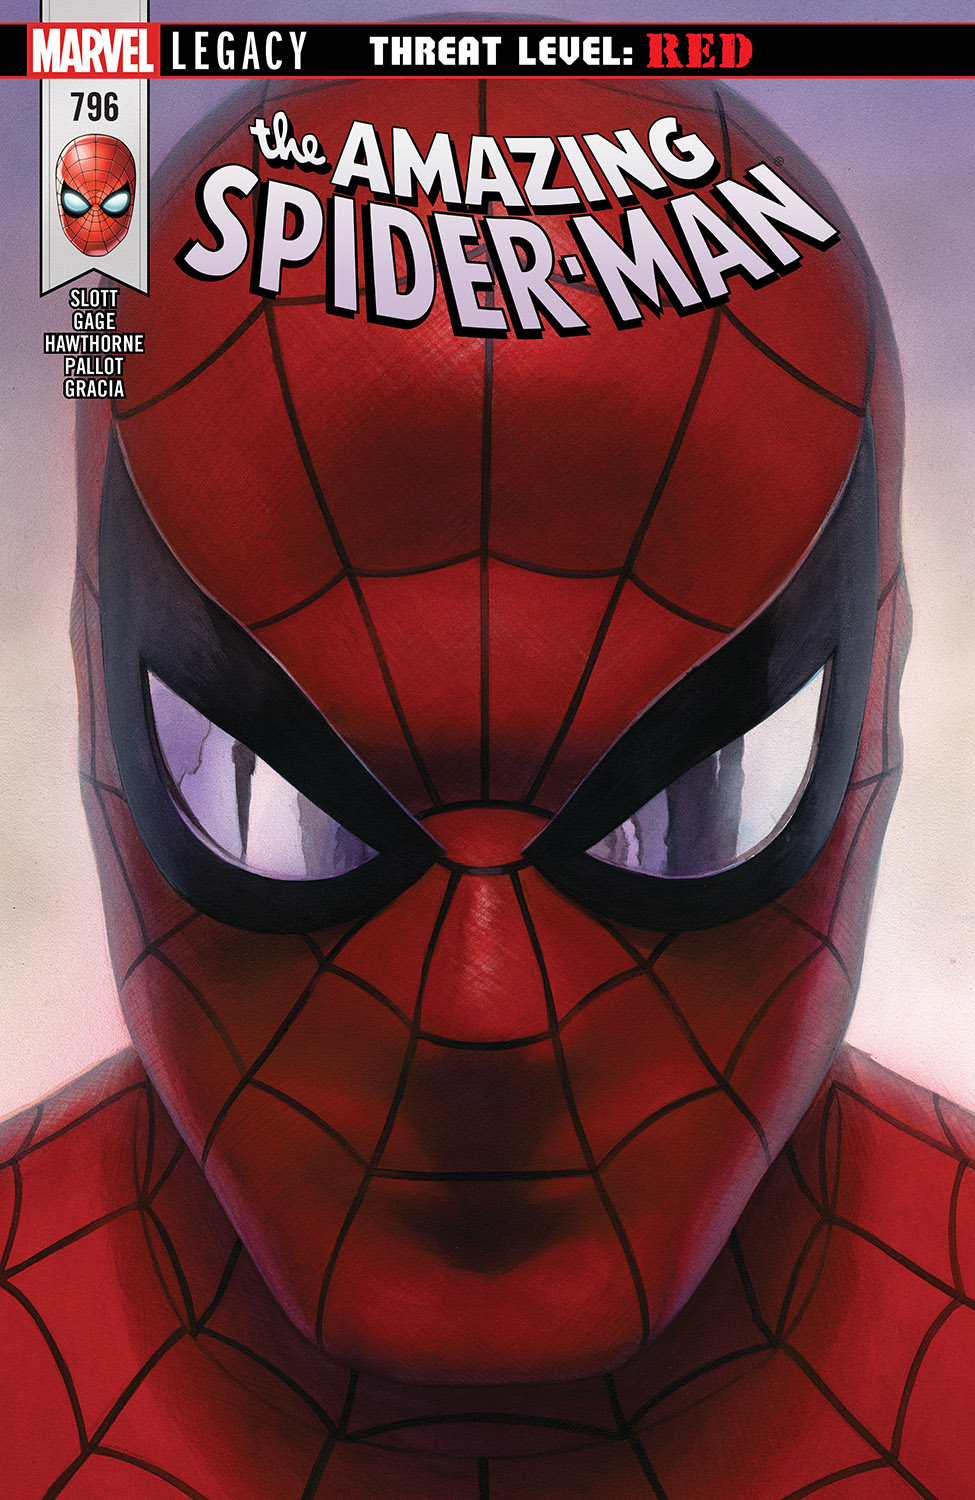 The Amazing Spider-Man (2015) #796